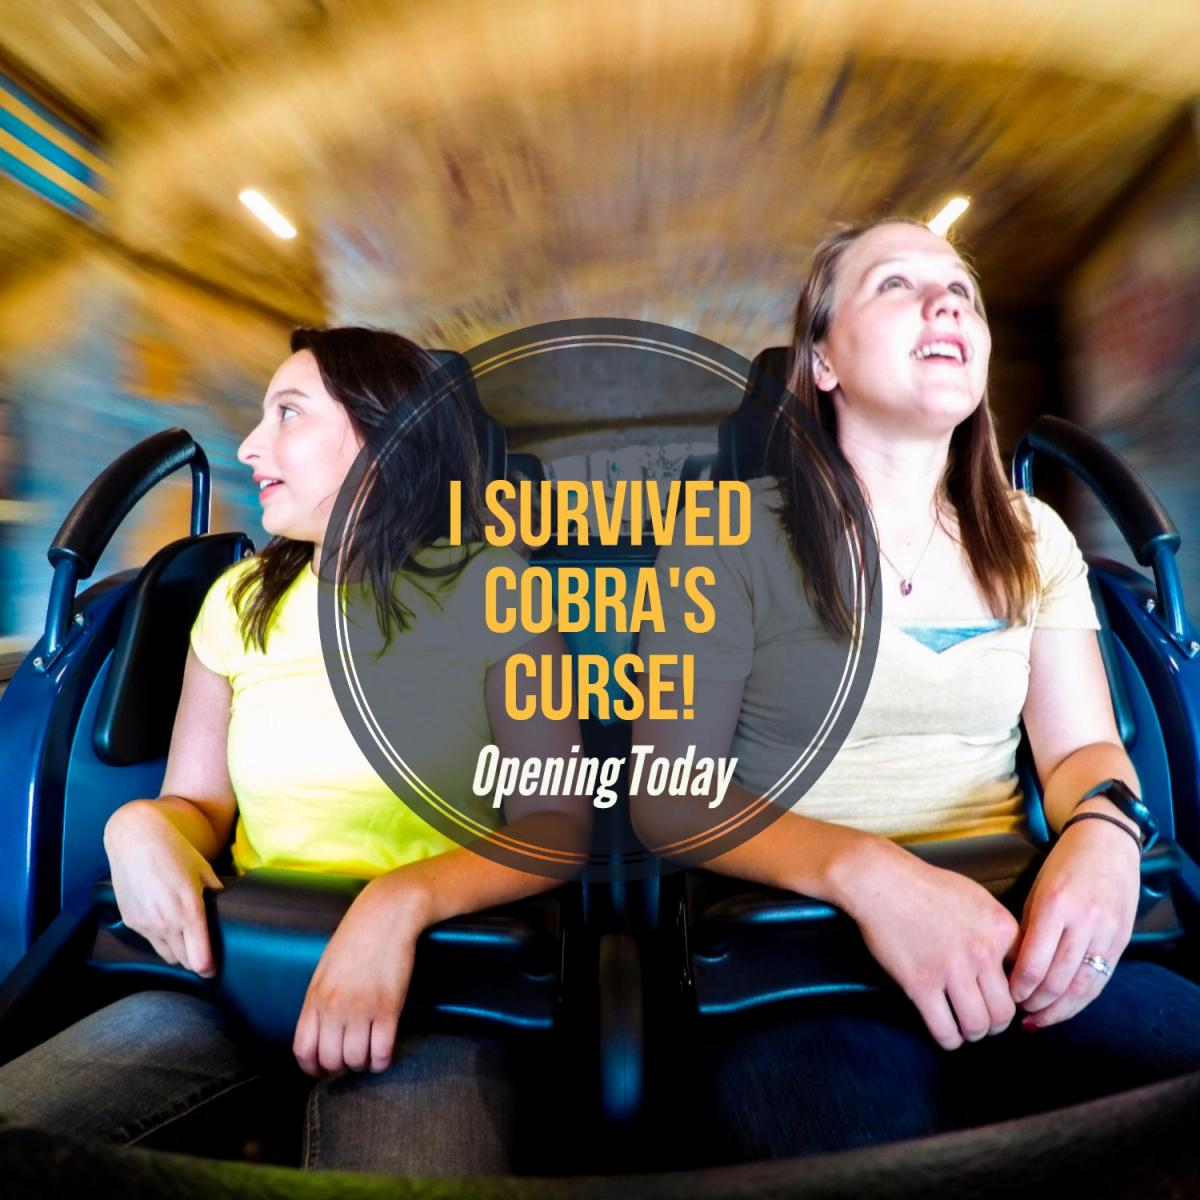 Cobra's Curse is an Exhilarating Family Experience